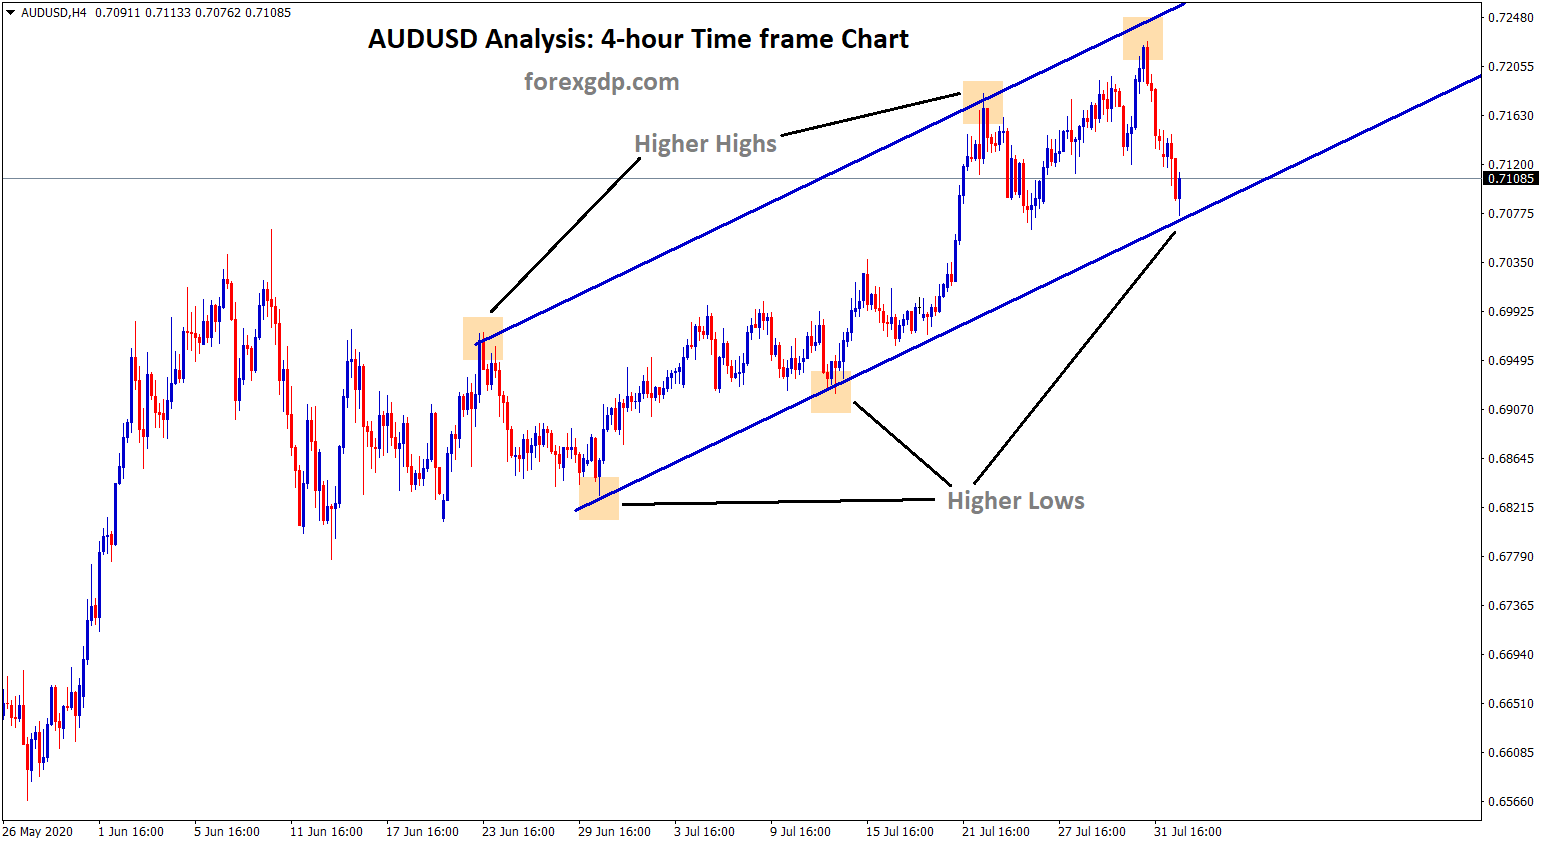 audusd reach higher low of uptrend line in 4h